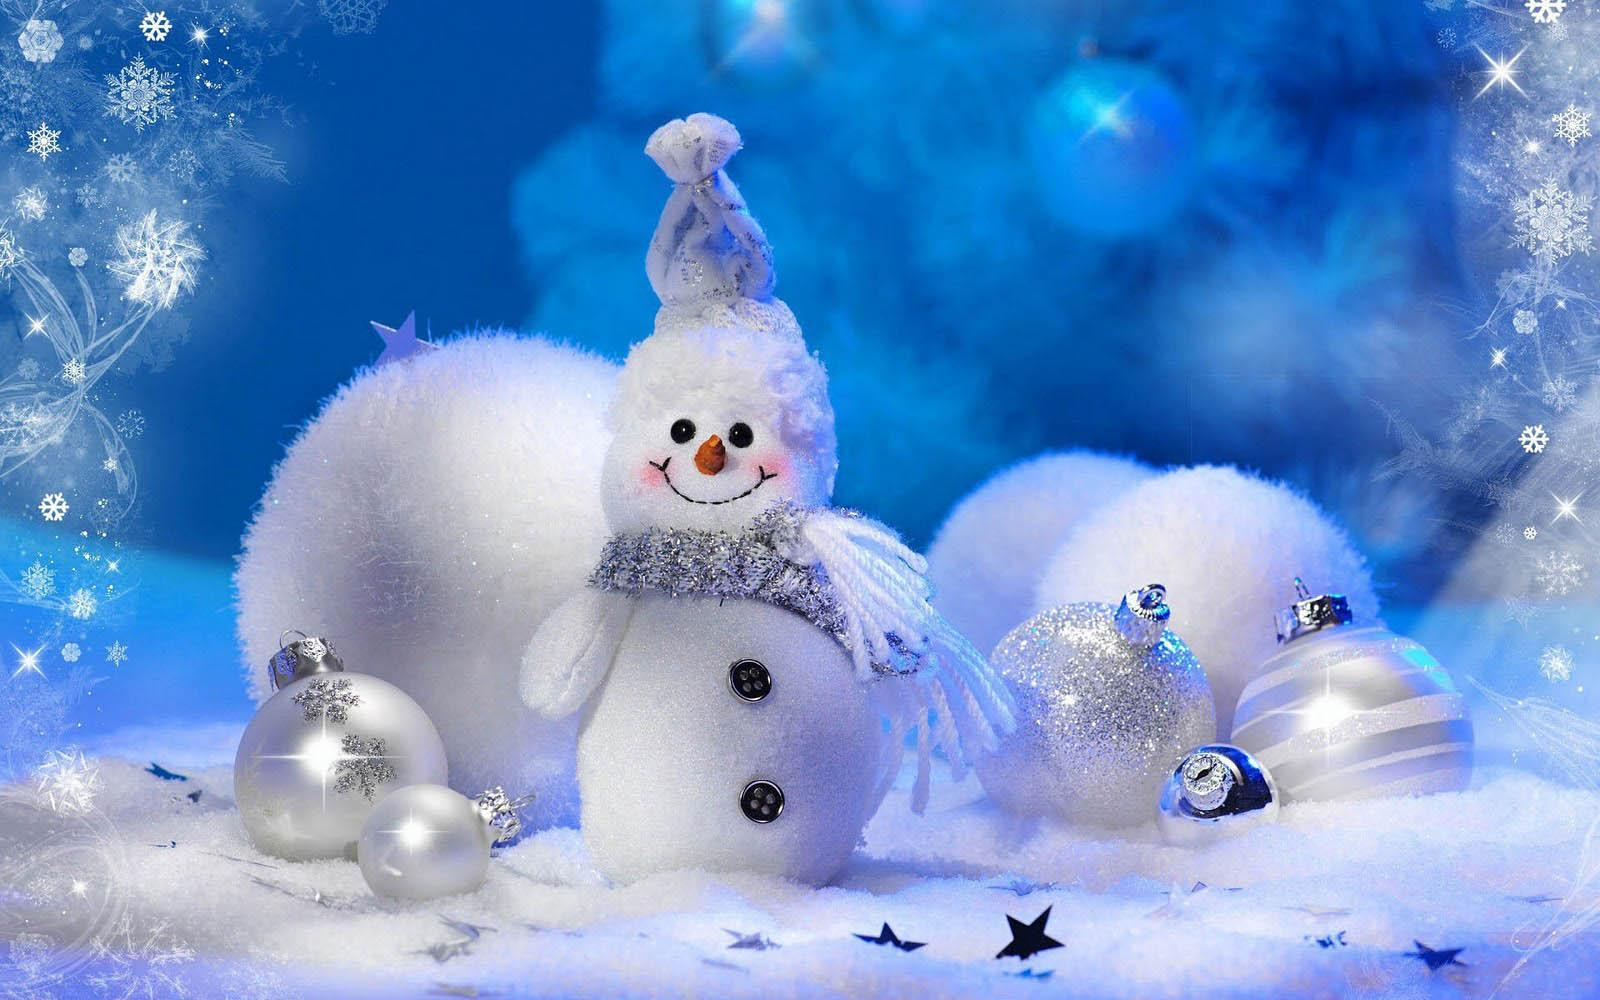 Christmas Snowman Android Wallpaper 29013 High Resolution